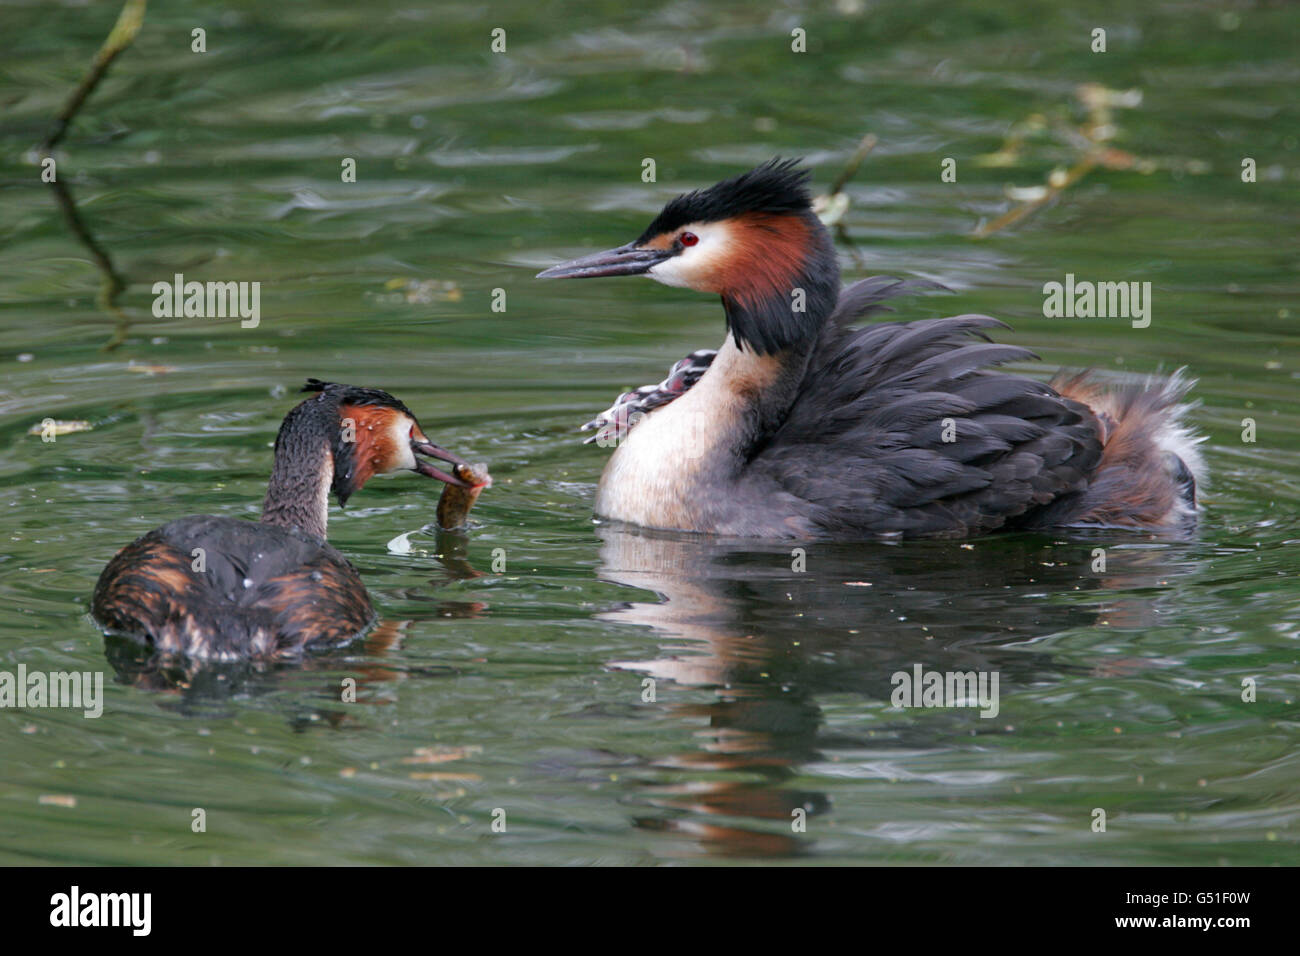 Great-crested Grebes, Podiceps cristatus, female bringing fish to young on back of male. Taken May. Lea Valley, - Stock Image